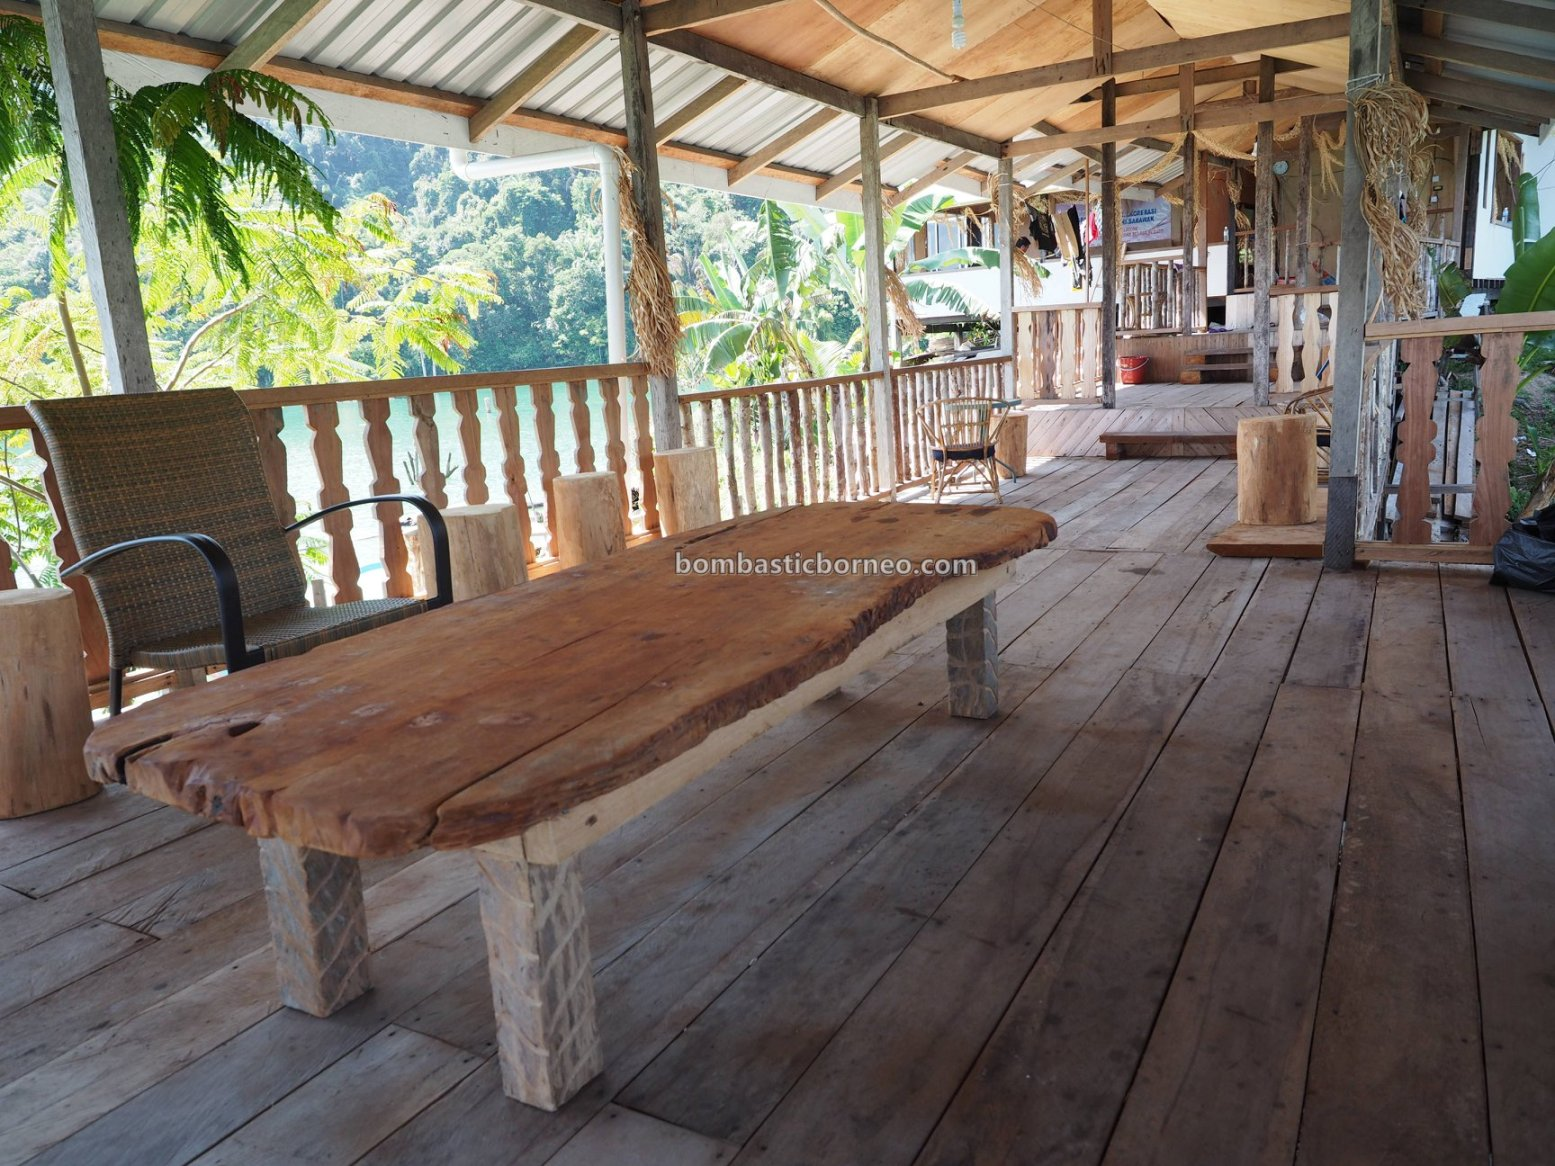 Mebong Cove Villa, backpackers, destination, traditional, fishing trip, chalet, homestay, Belaga, Kapit, Tourism, tourist attraction, travel guide, Trans Border, 婆罗洲度假胜地, 砂拉越巴贡水电站, 加帛马来西亚,